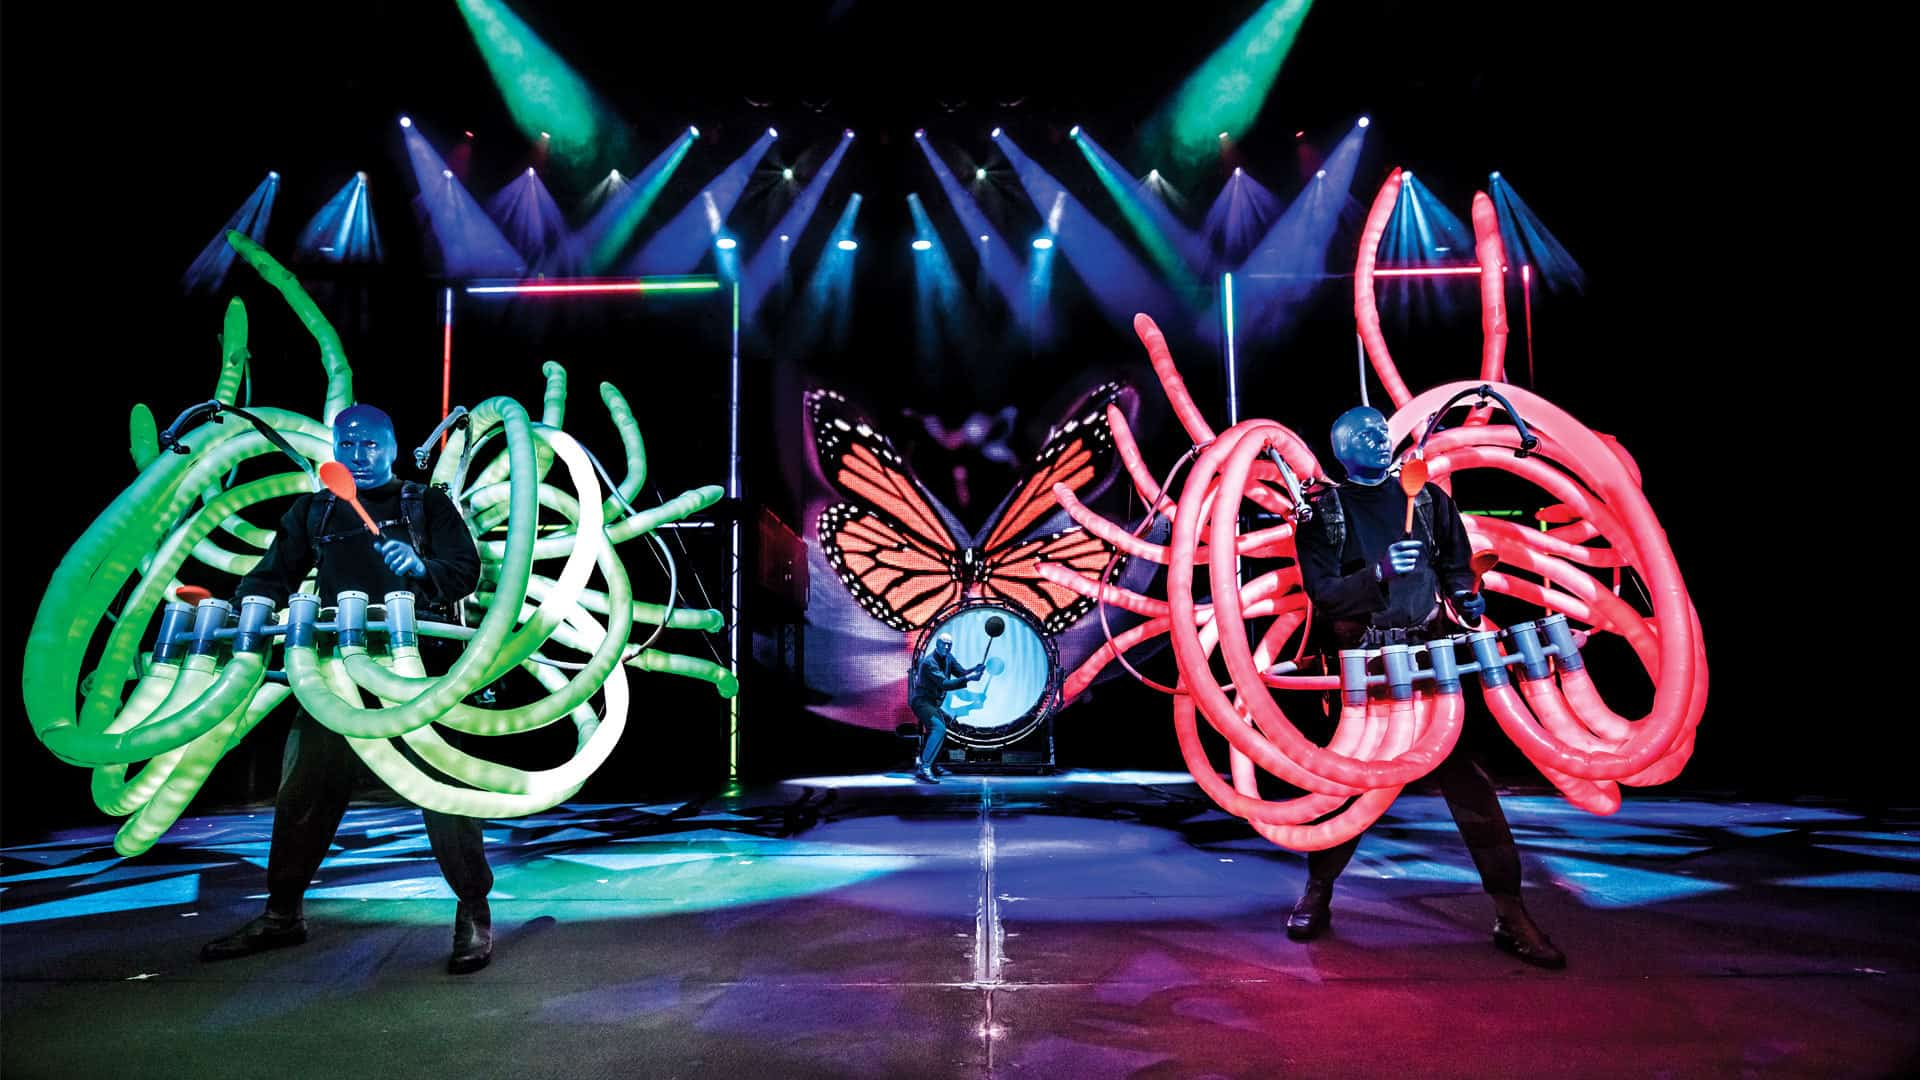 Cirque du Soleil buys Blue Man Group & changes Orlando's future